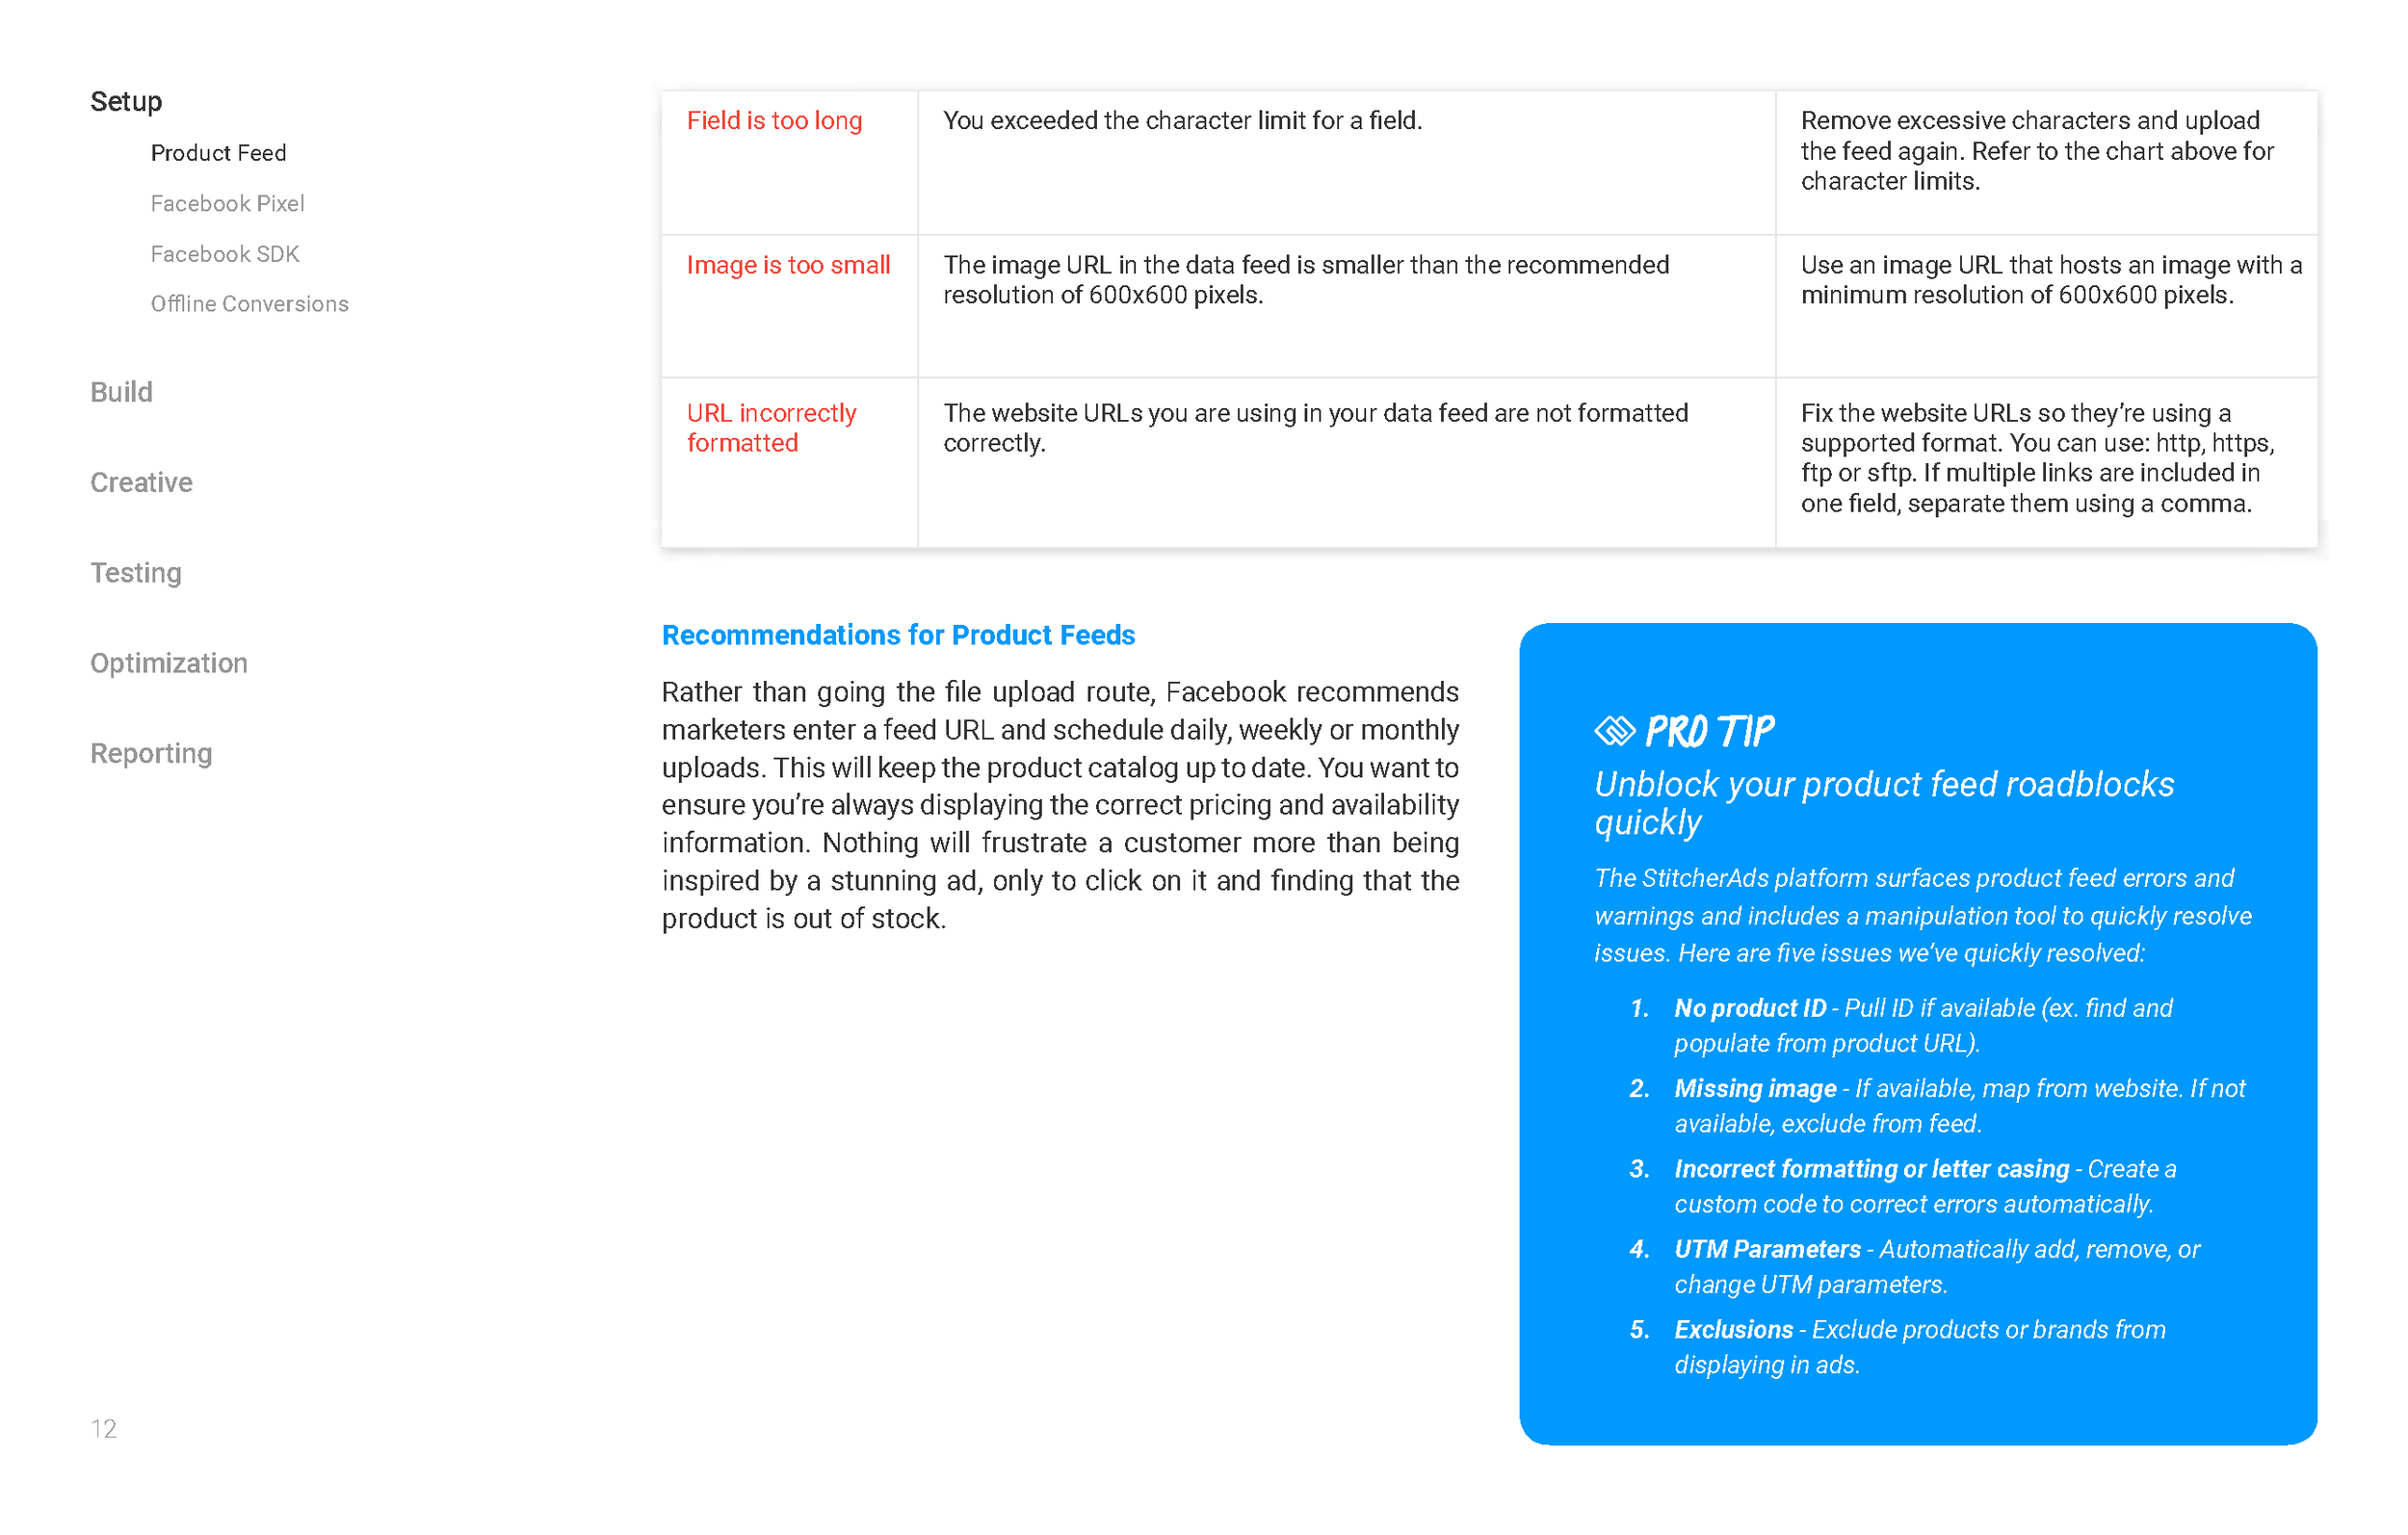 retail playbook _Page_012.png